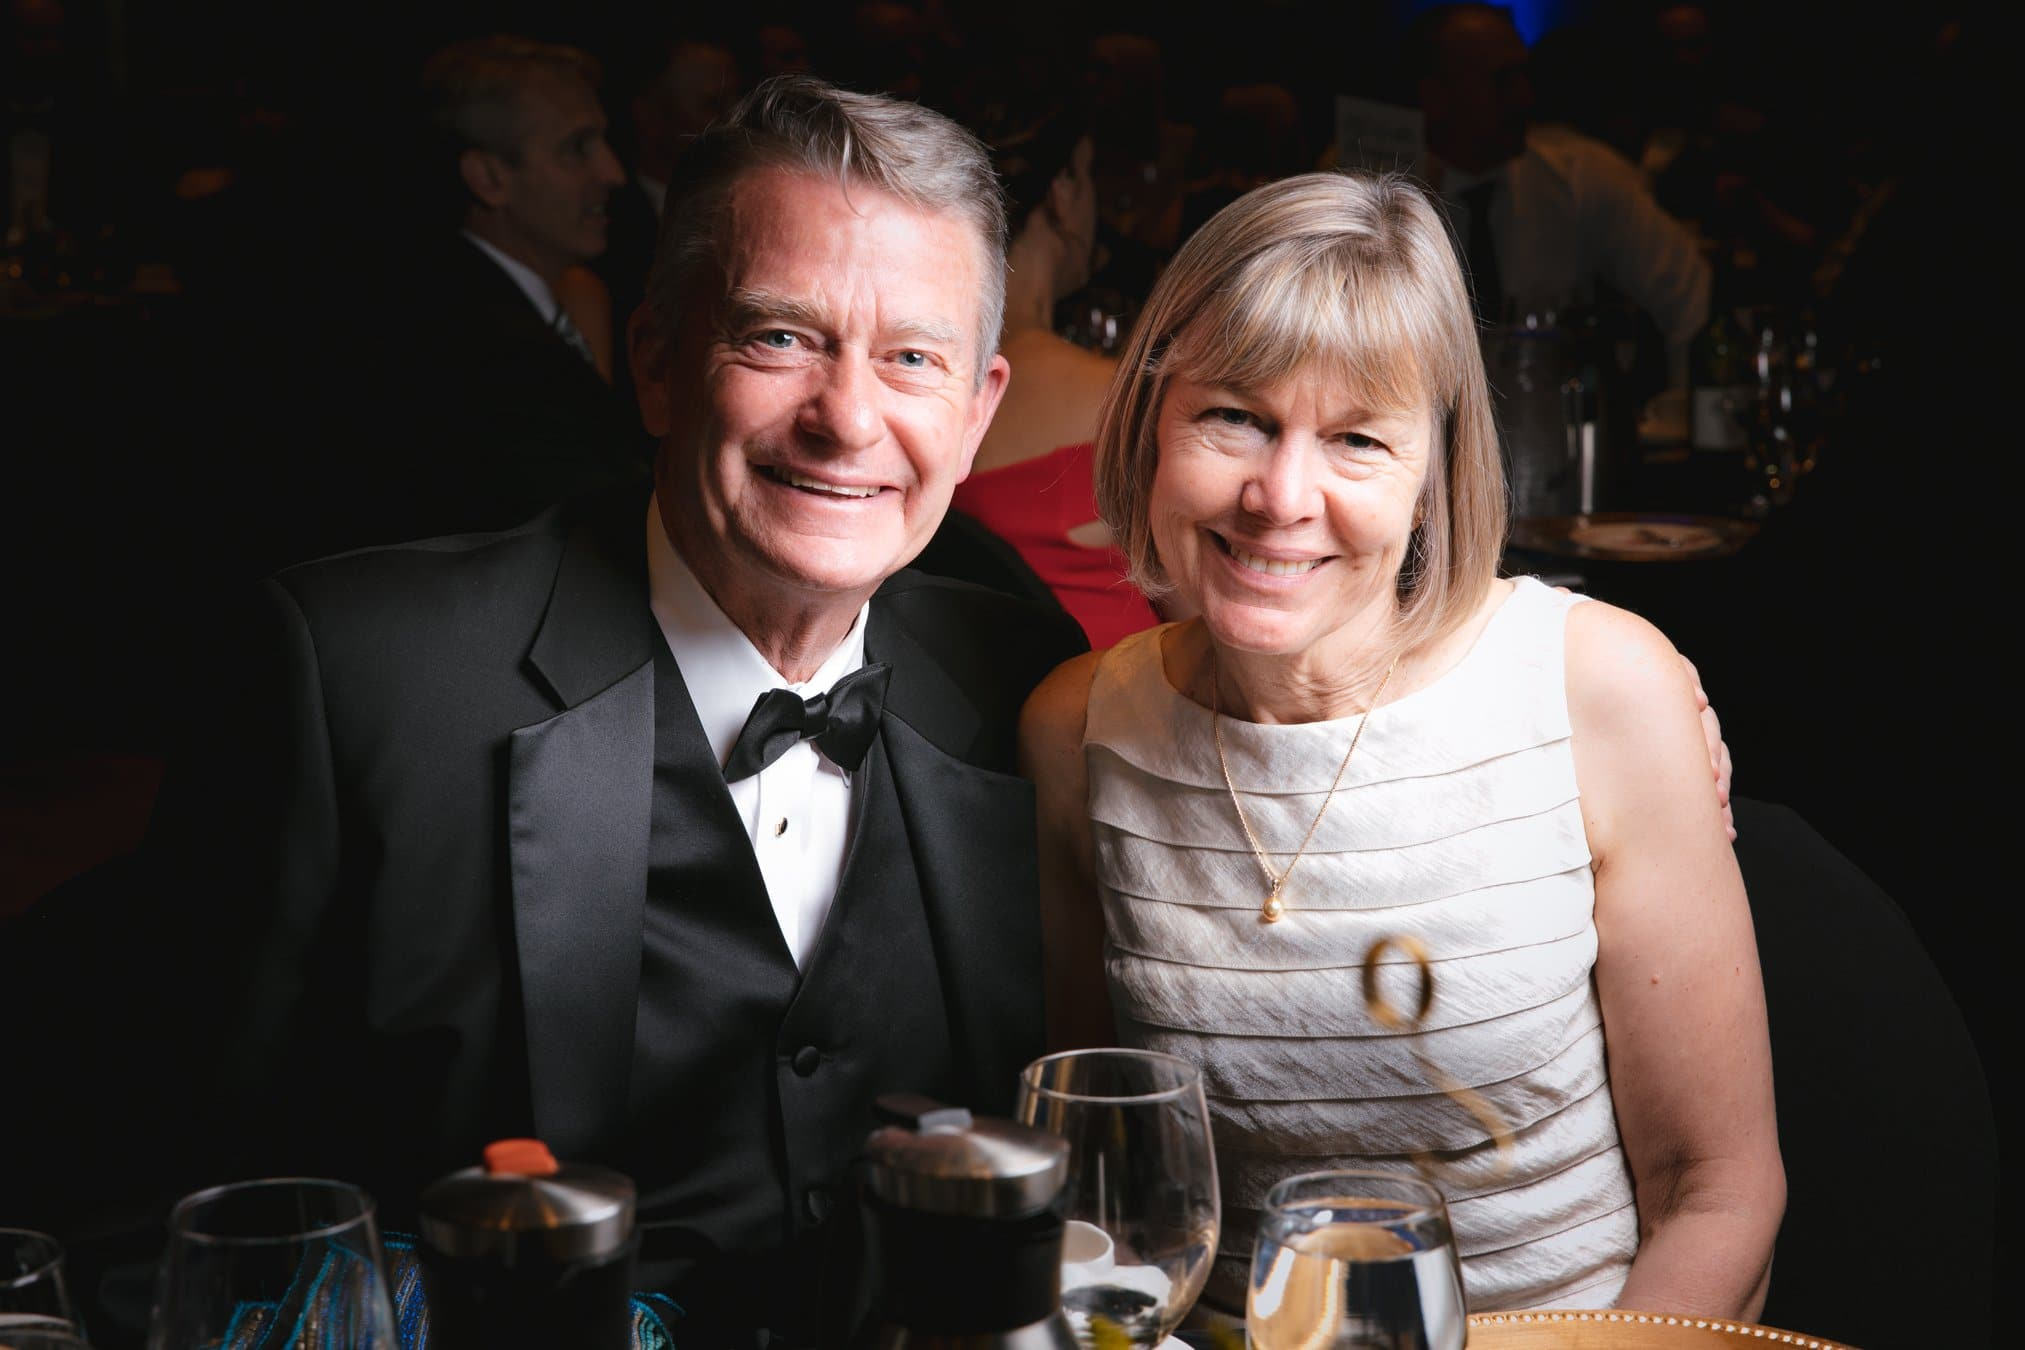 Photo of 2 well-dressed people from a FUNDSY Gala event